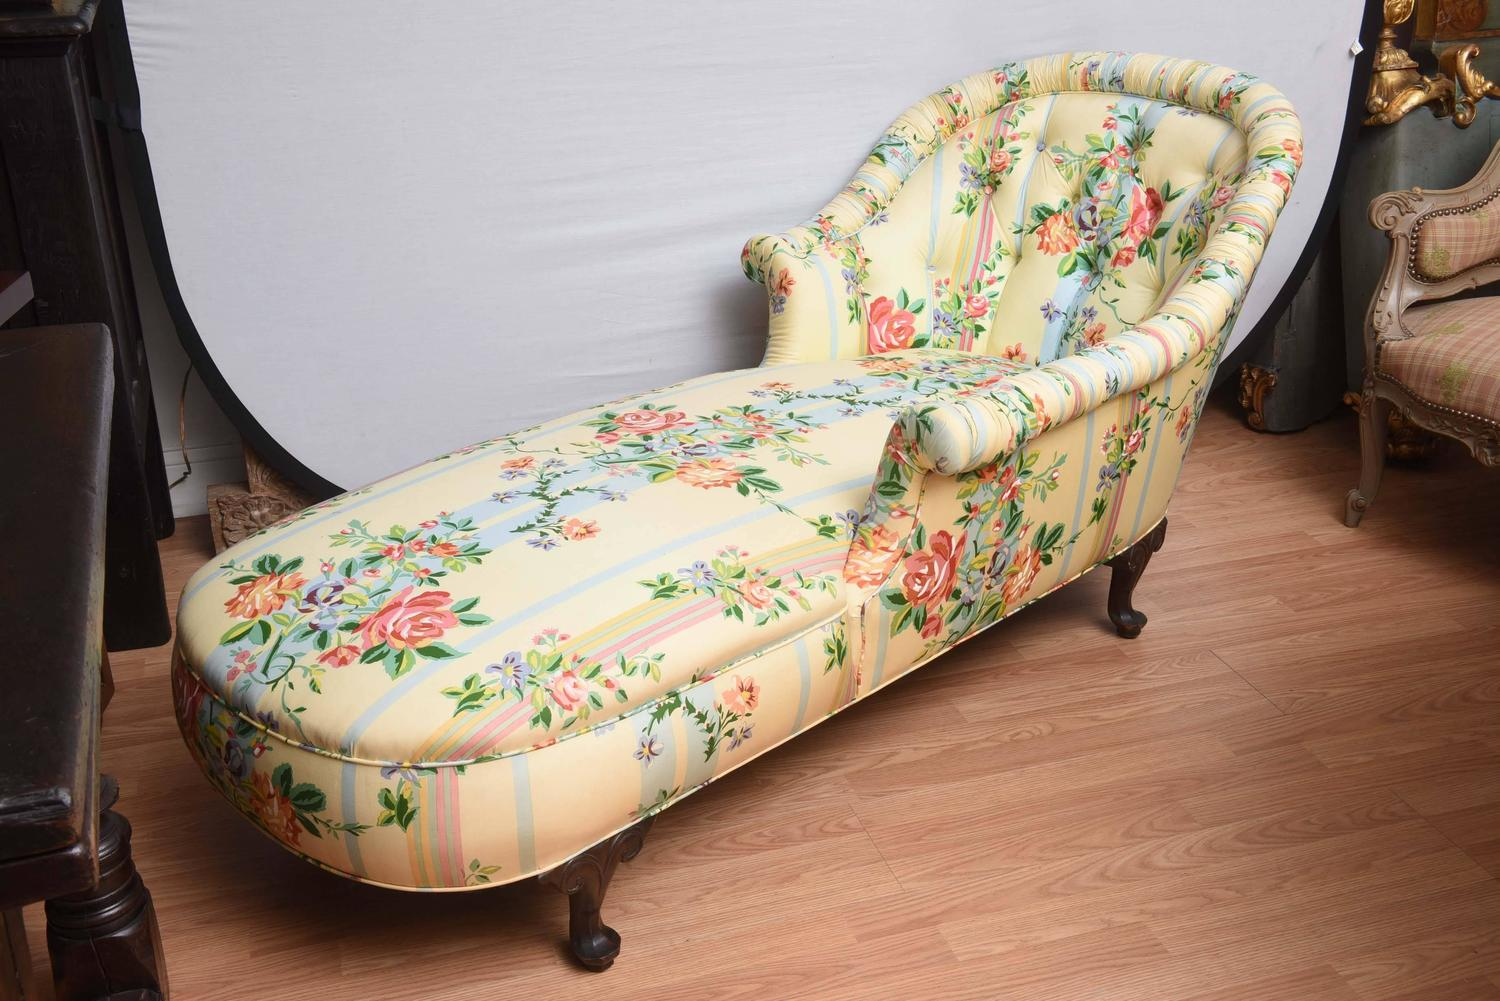 Fine 1940 s Chaise Lounge with Floral Pattern Fabric at 1stdibs